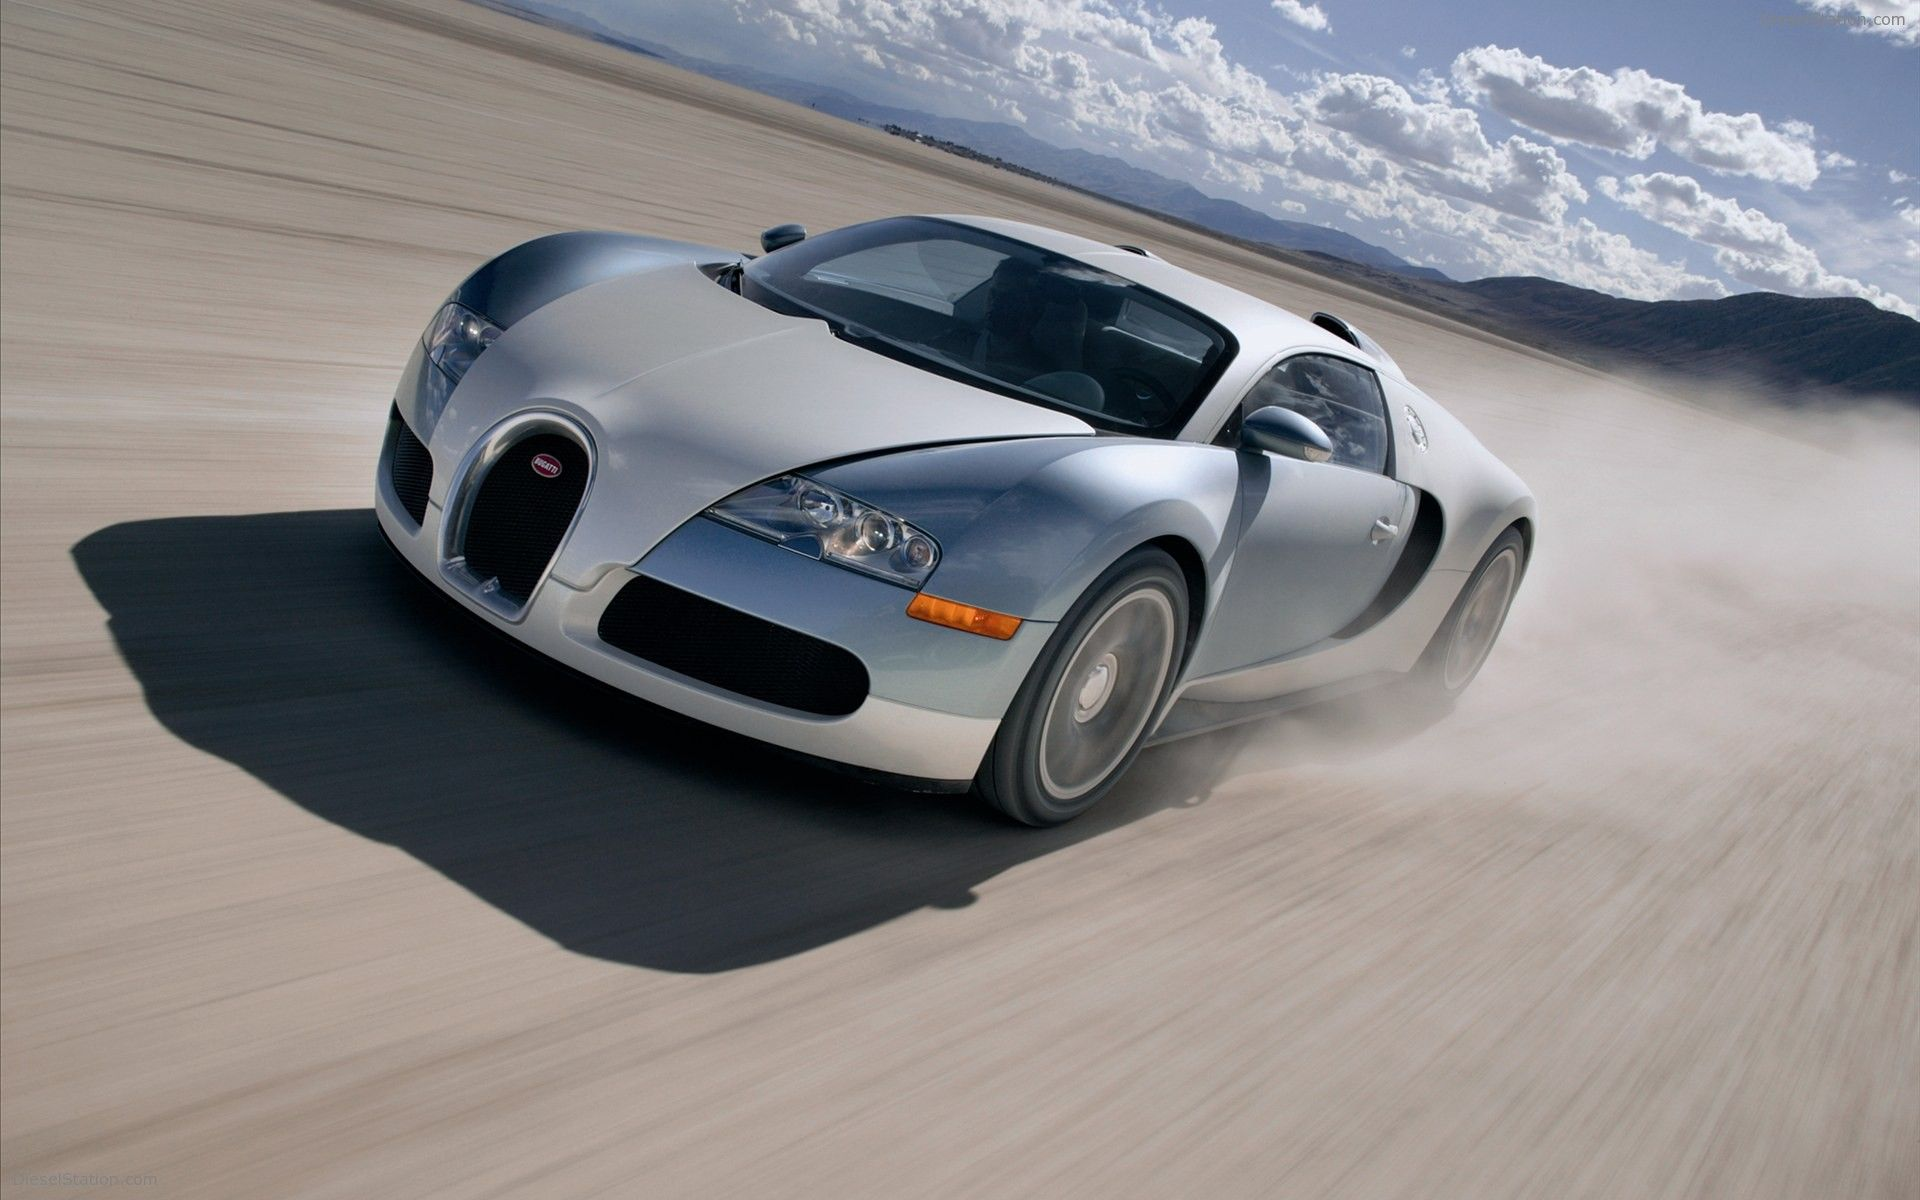 91f26ae6bbd54247cd6d1a9db315d5fa Cool Bugatti Veyron Price In Uae 2015 Cars Trend